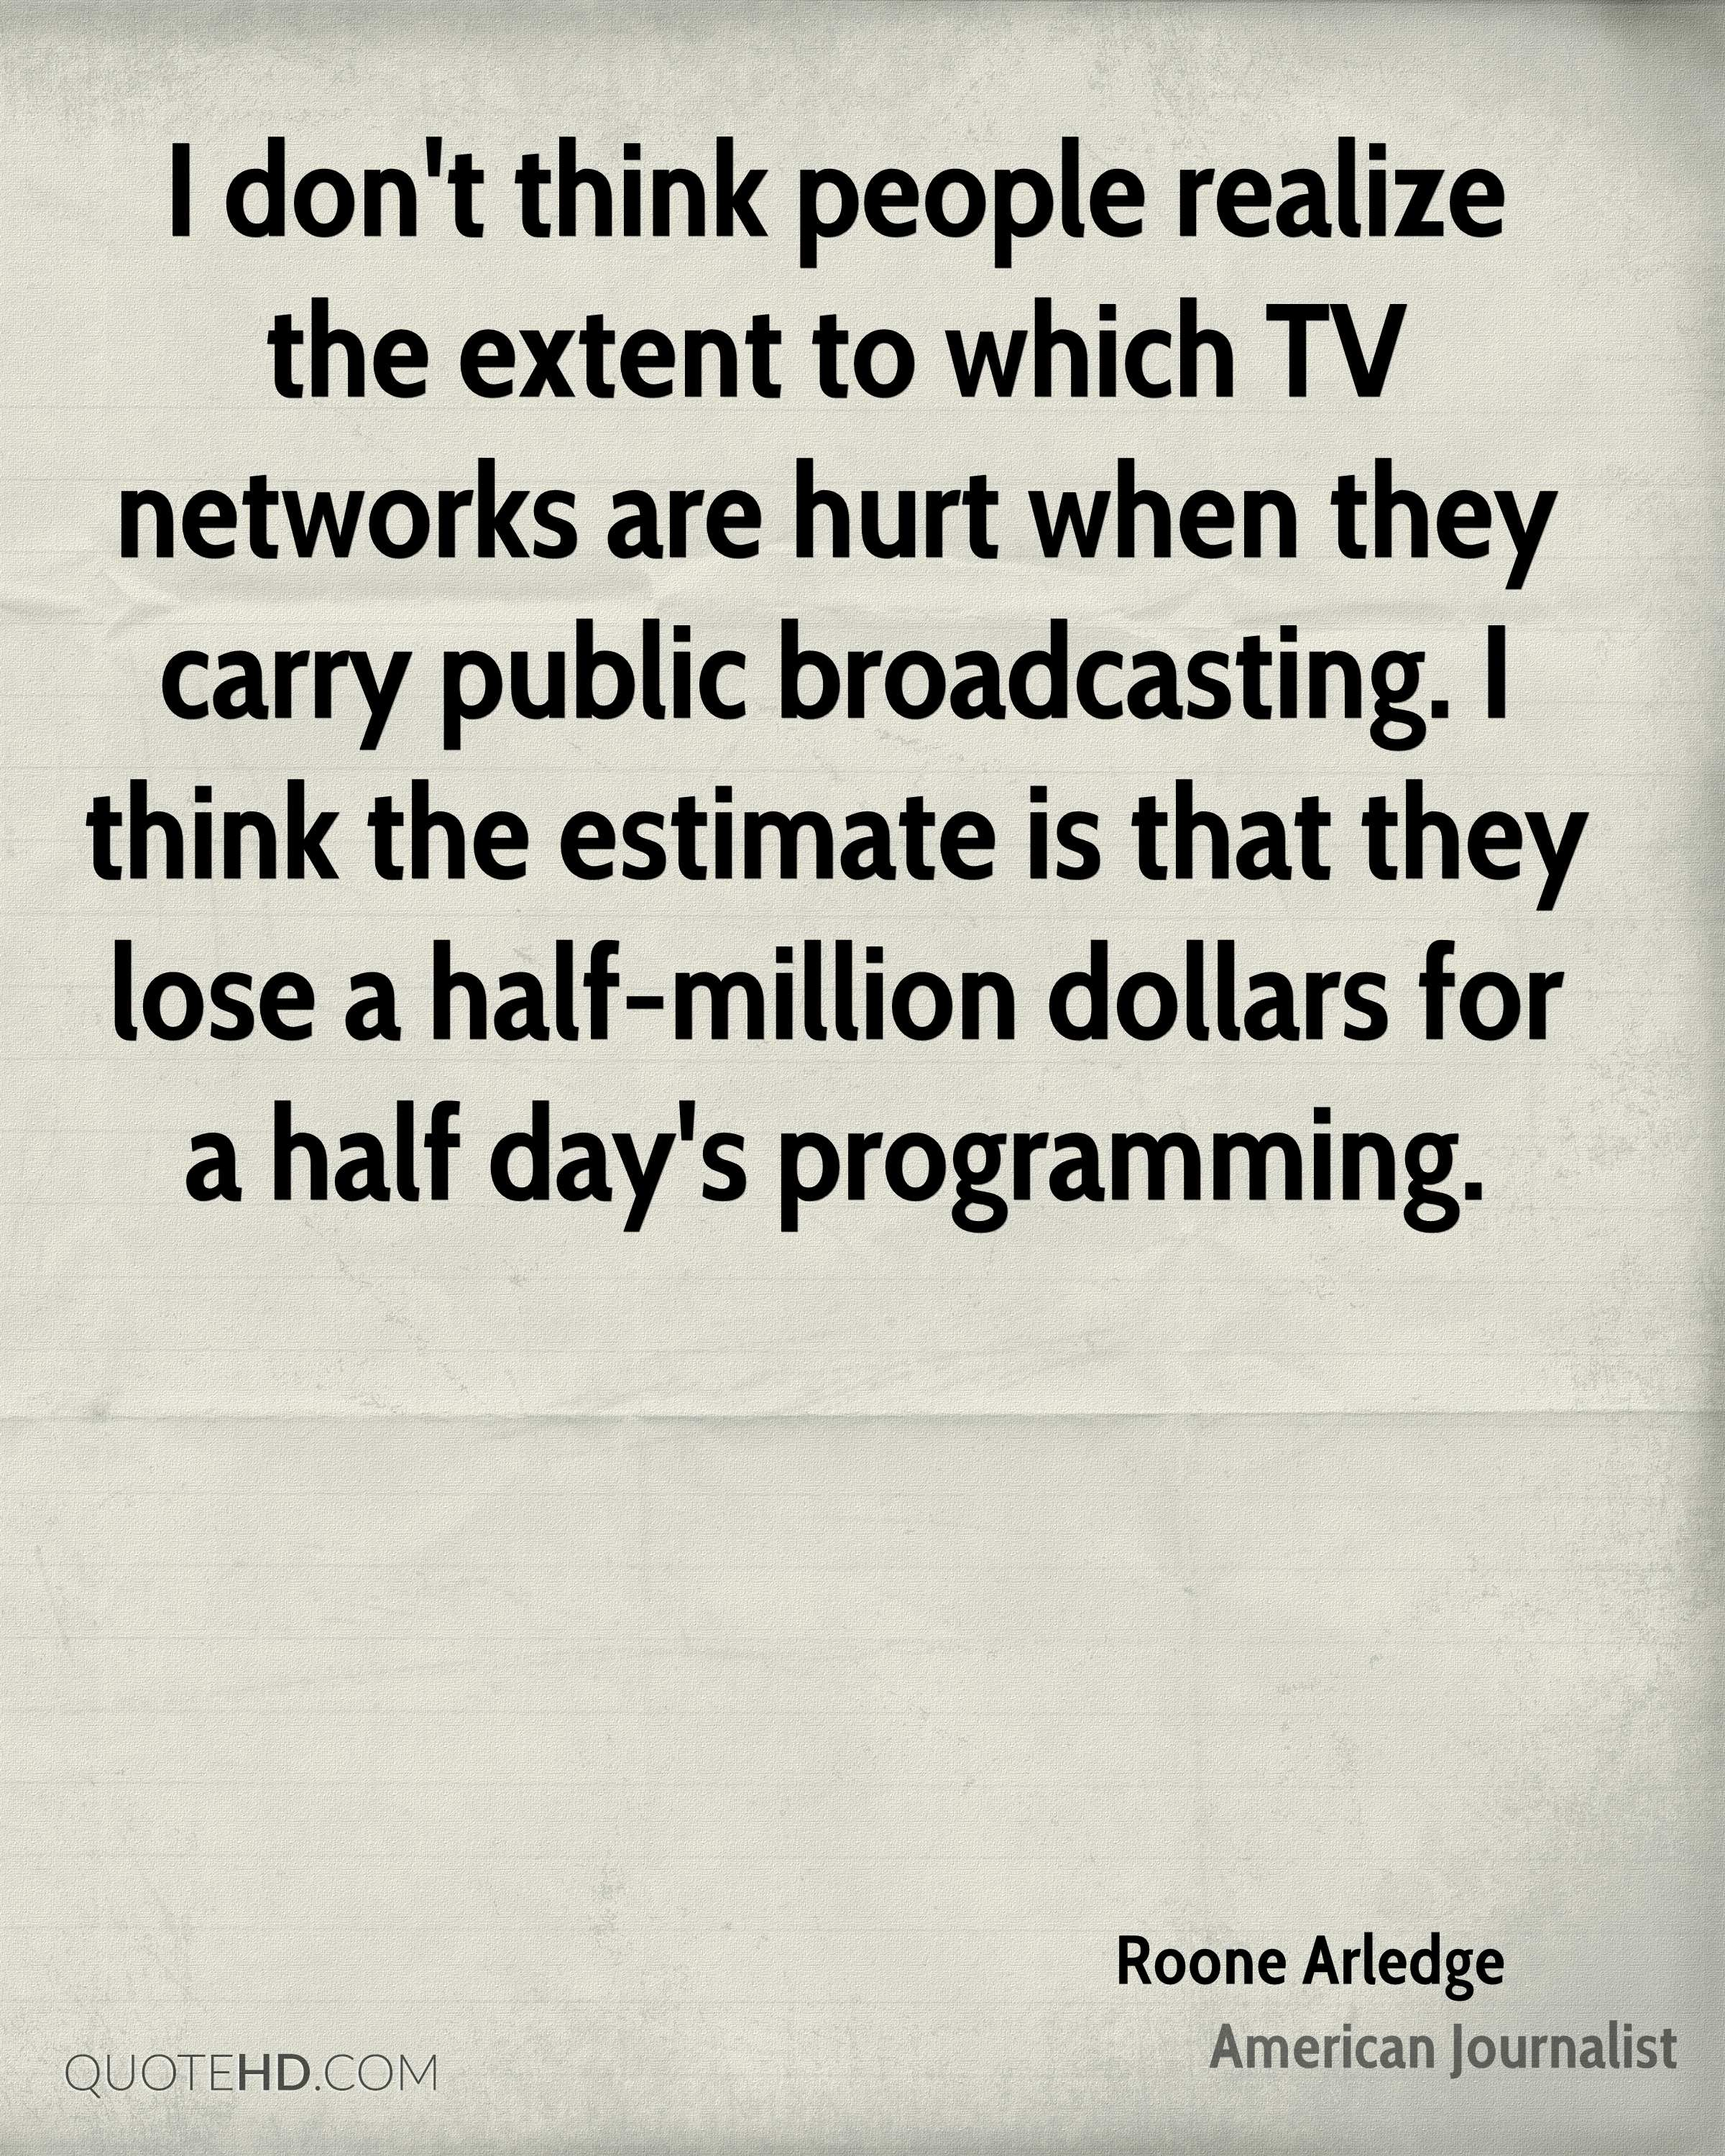 I don't think people realize the extent to which TV networks are hurt when they carry public broadcasting. I think the estimate is that they lose a half-million dollars for a half day's programming.